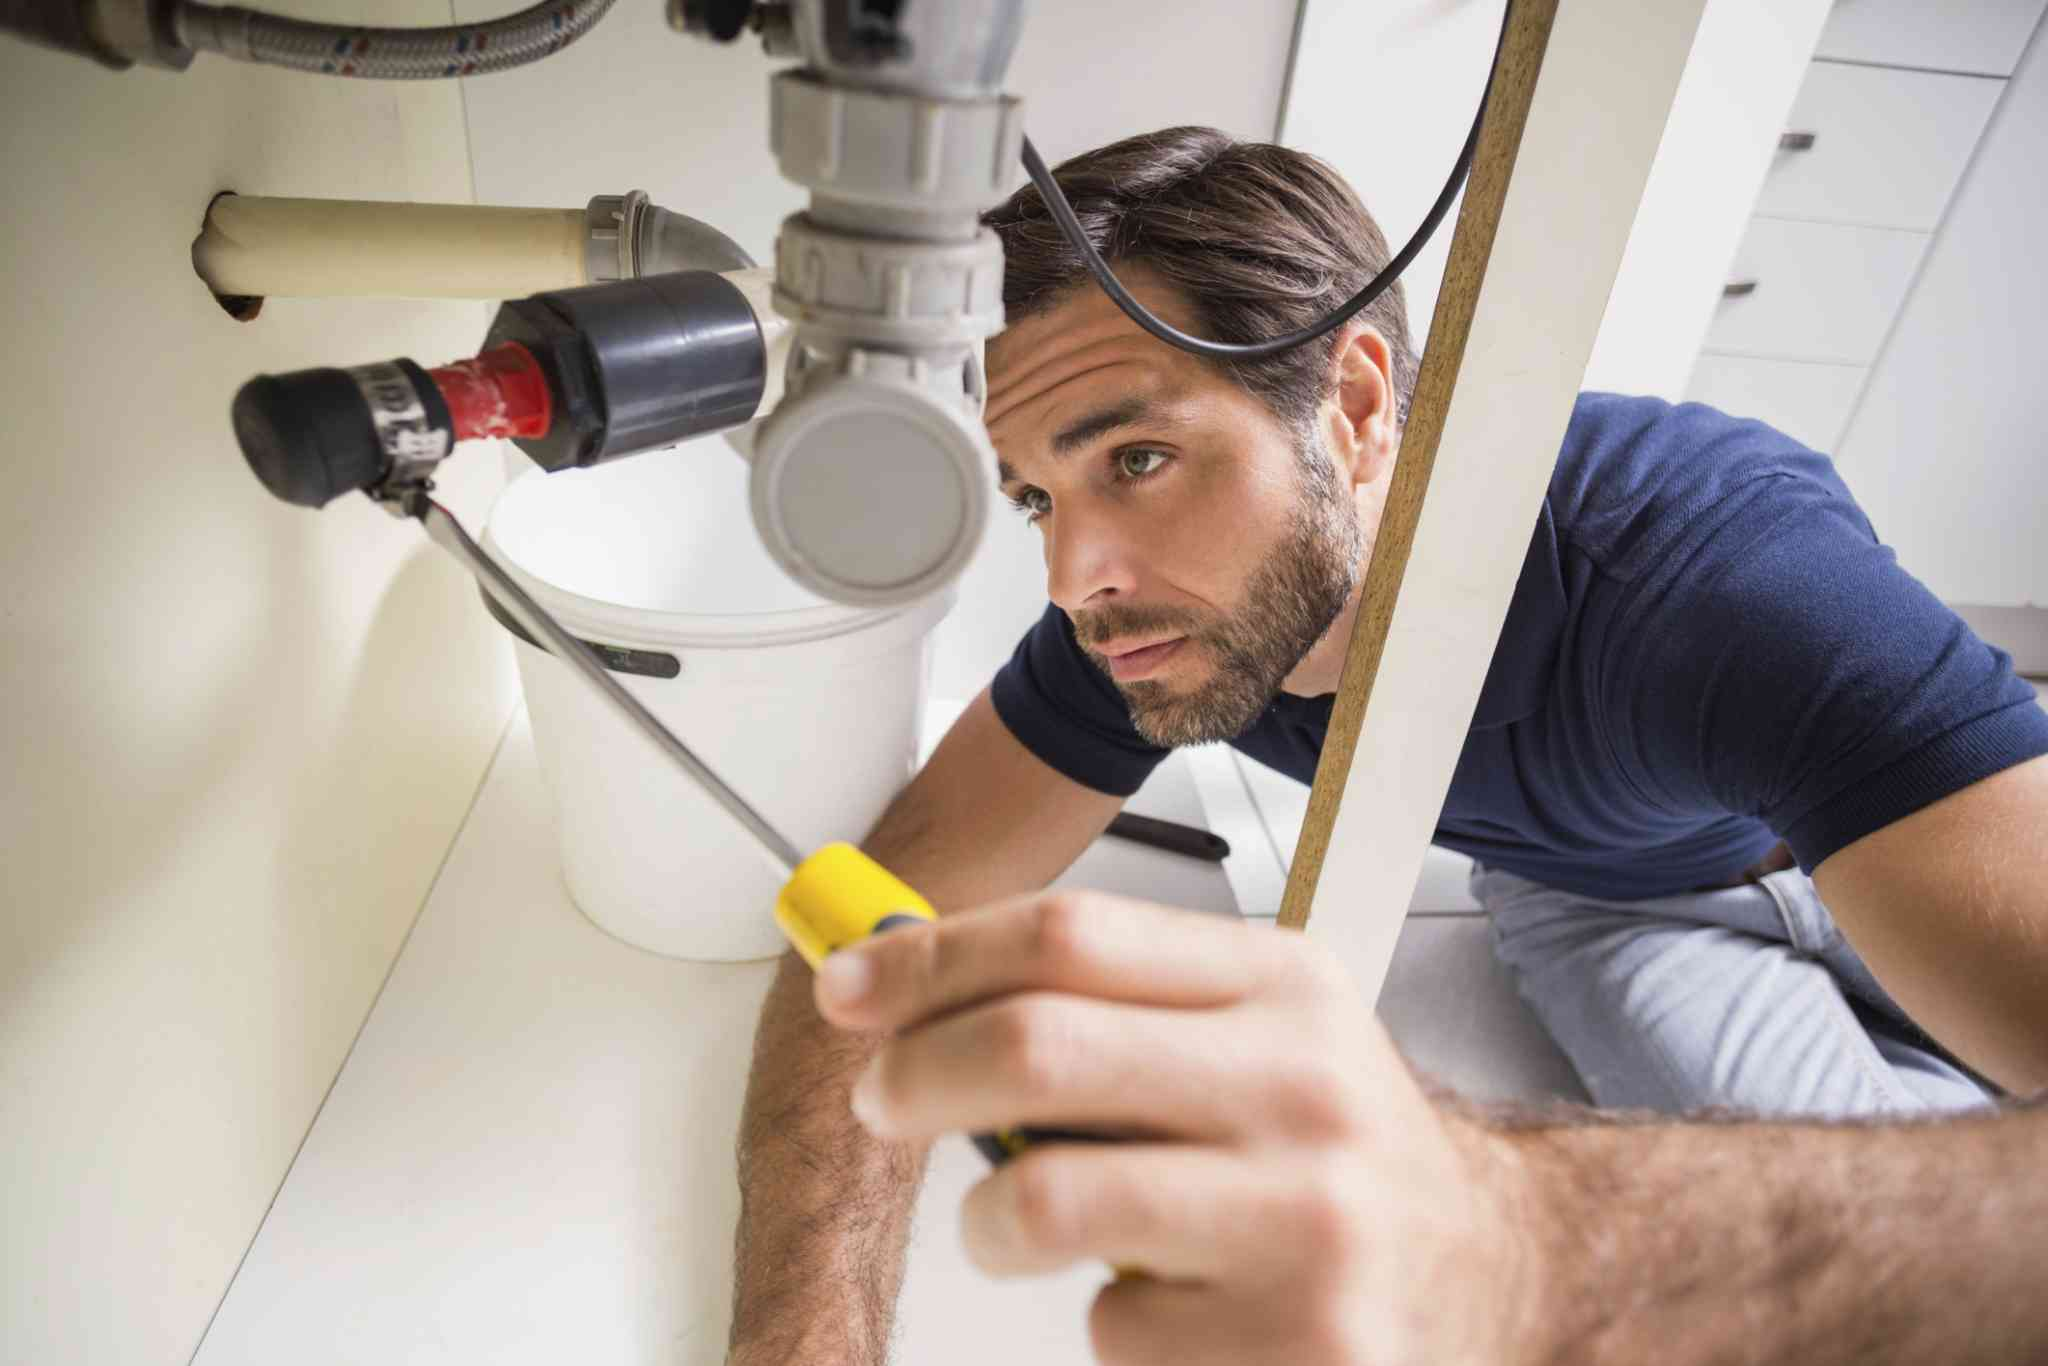 Common Water Heater Problems And How To Fix Them